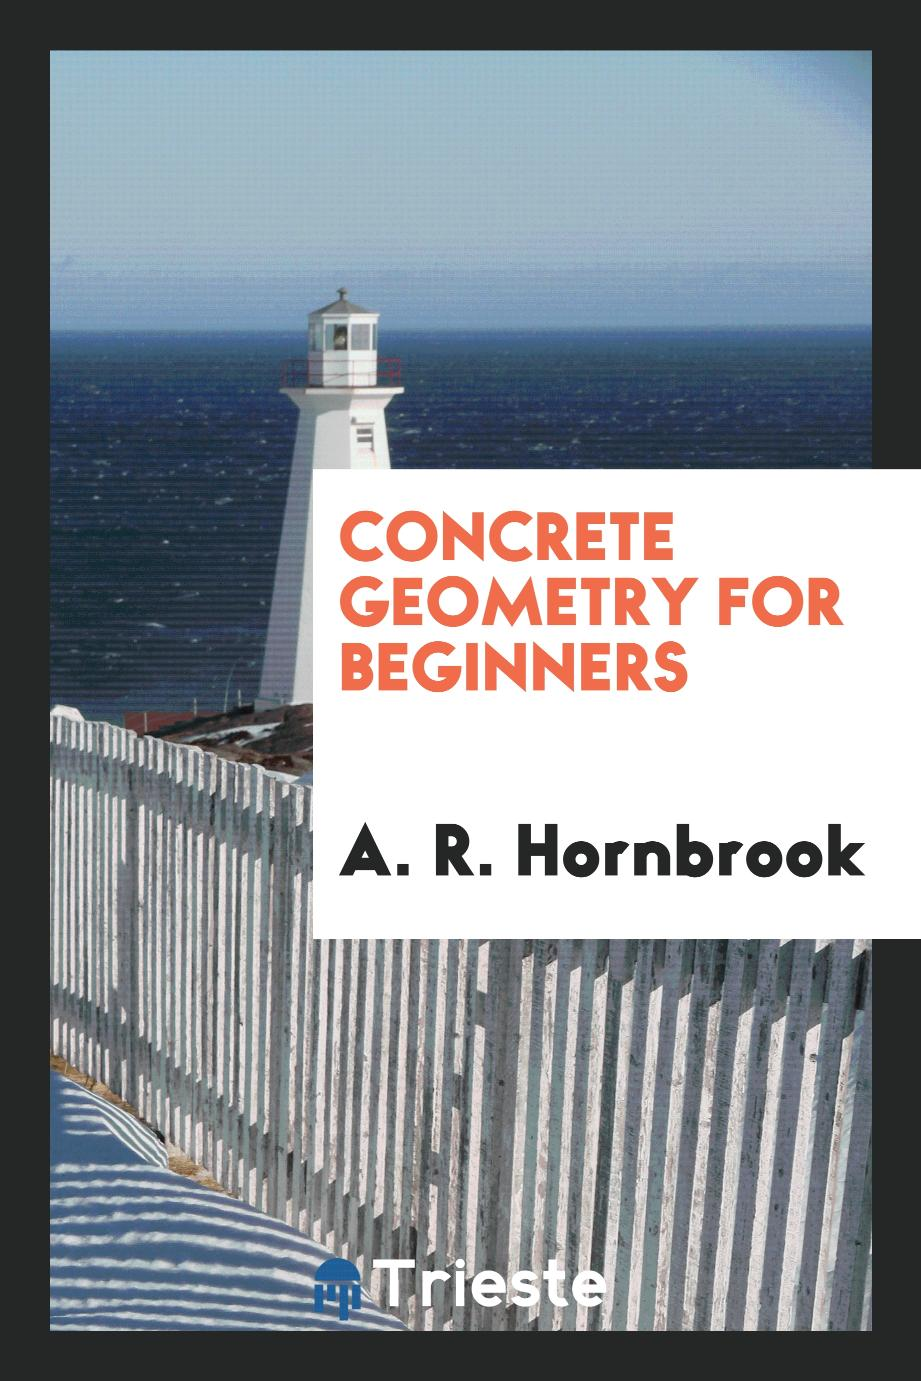 Concrete Geometry for Beginners